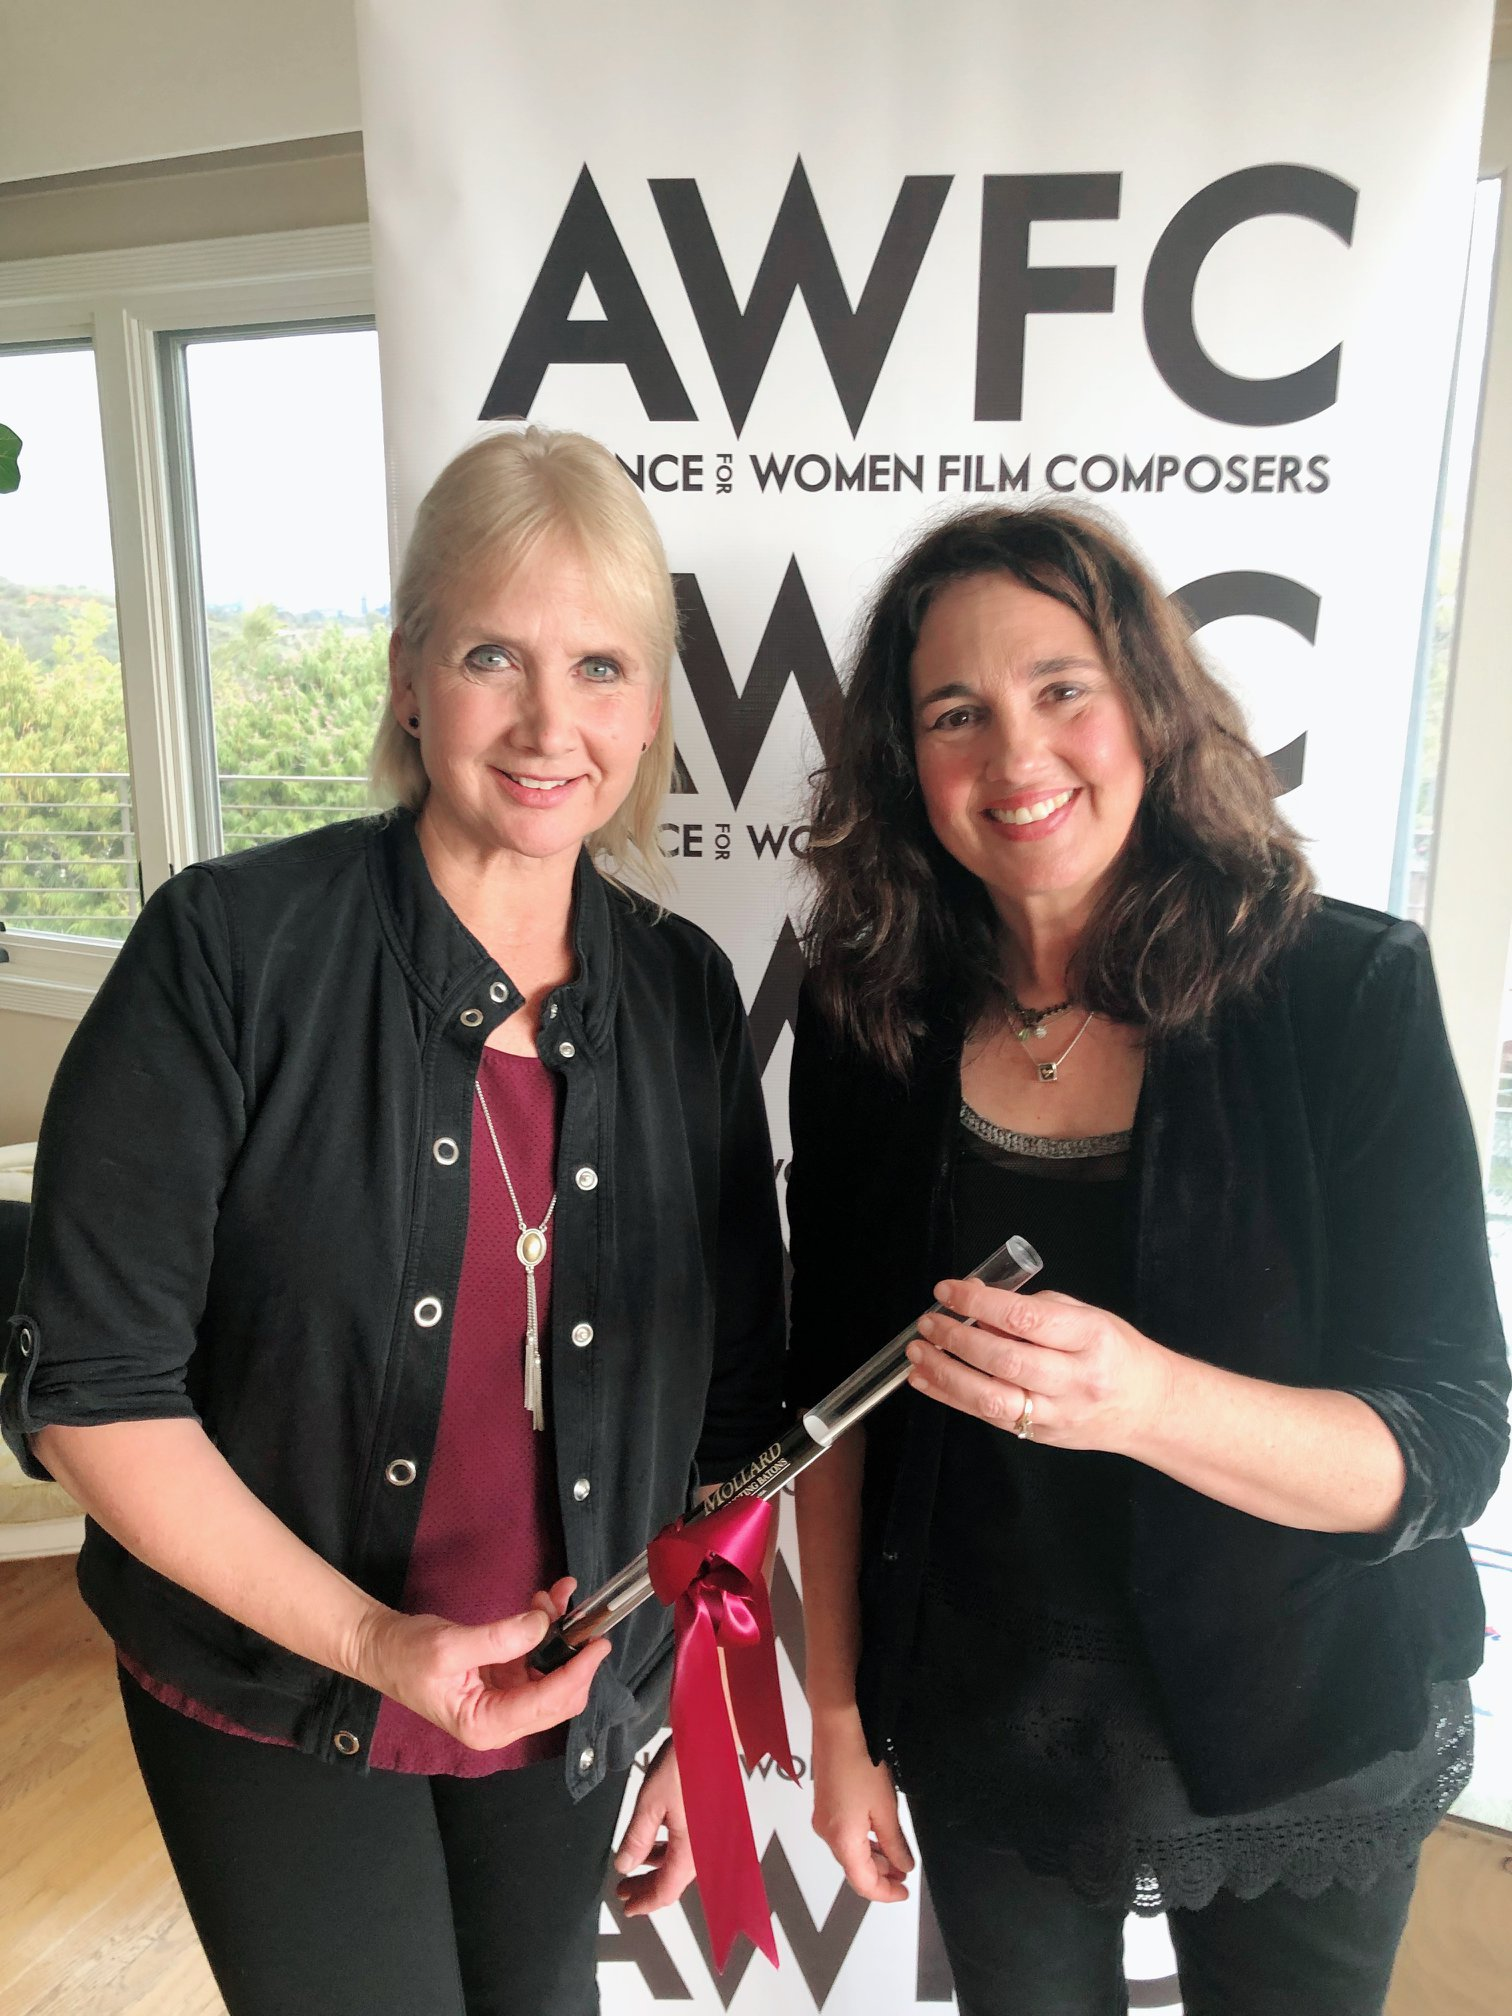 Leadership : Alliance for Women Film Composers